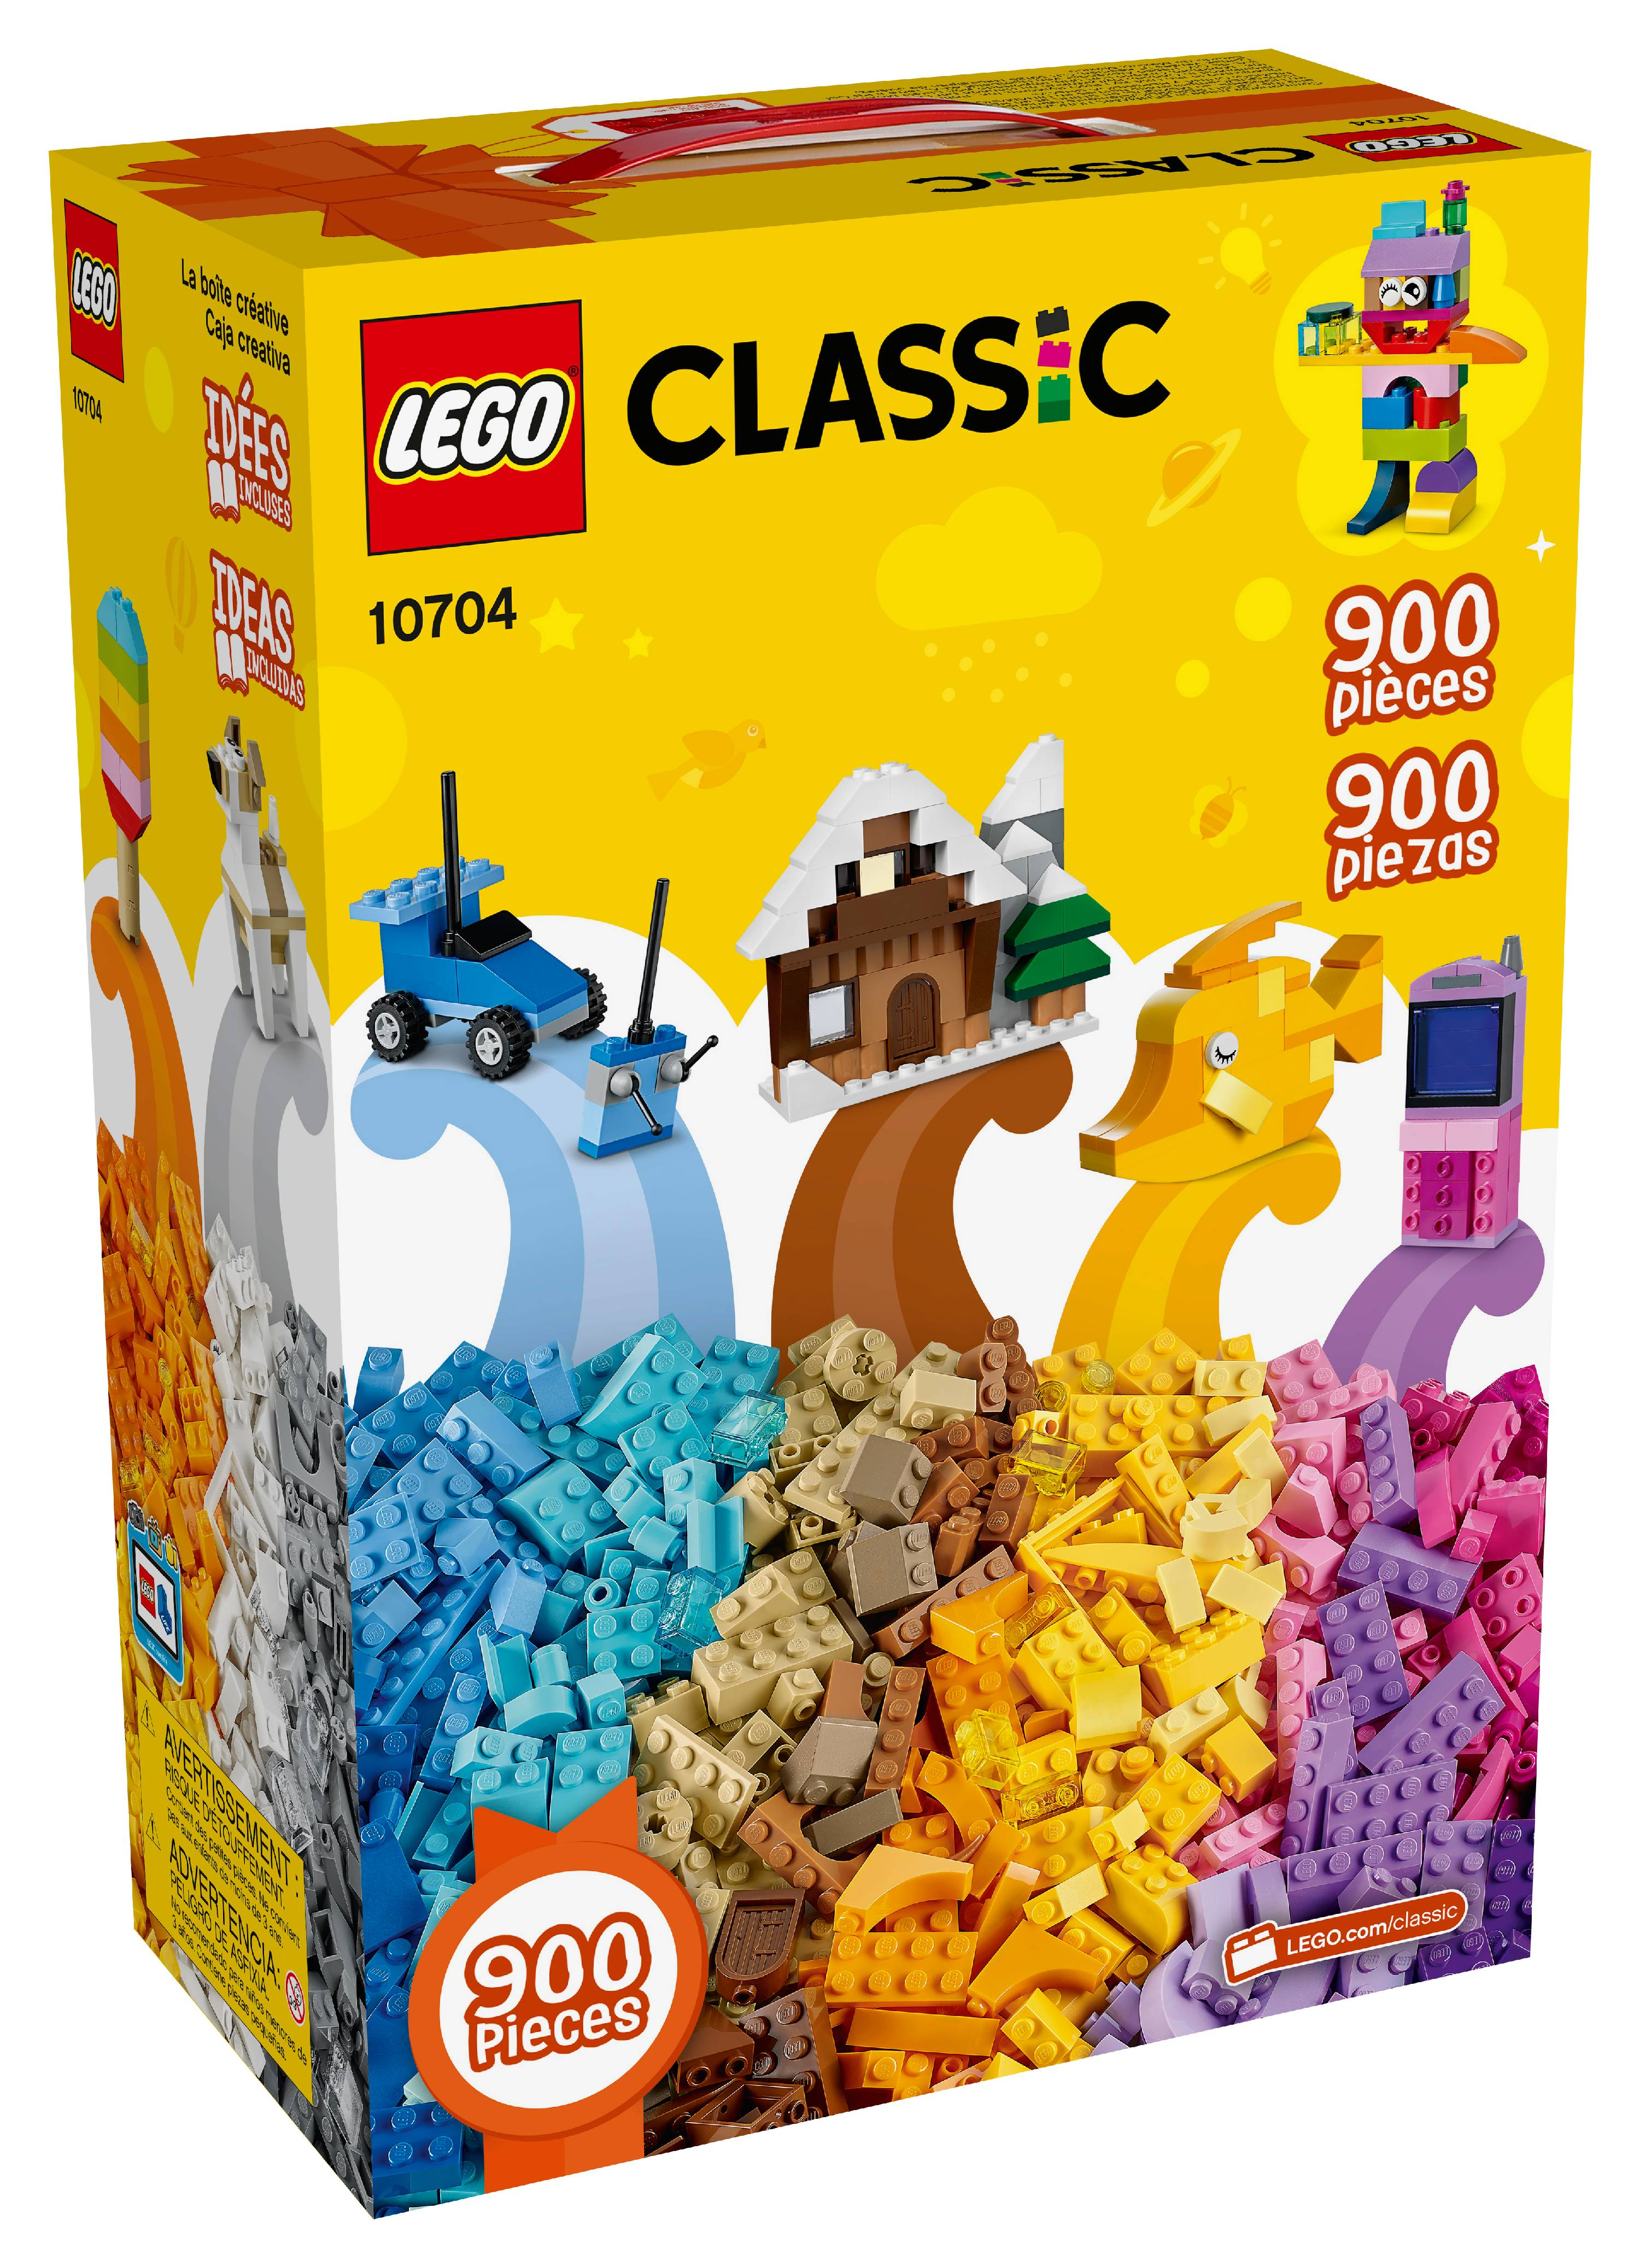 755f1f84e67 LEGO Classic Creative Box 10704 Building Set (900 Pieces) - Walmart.com